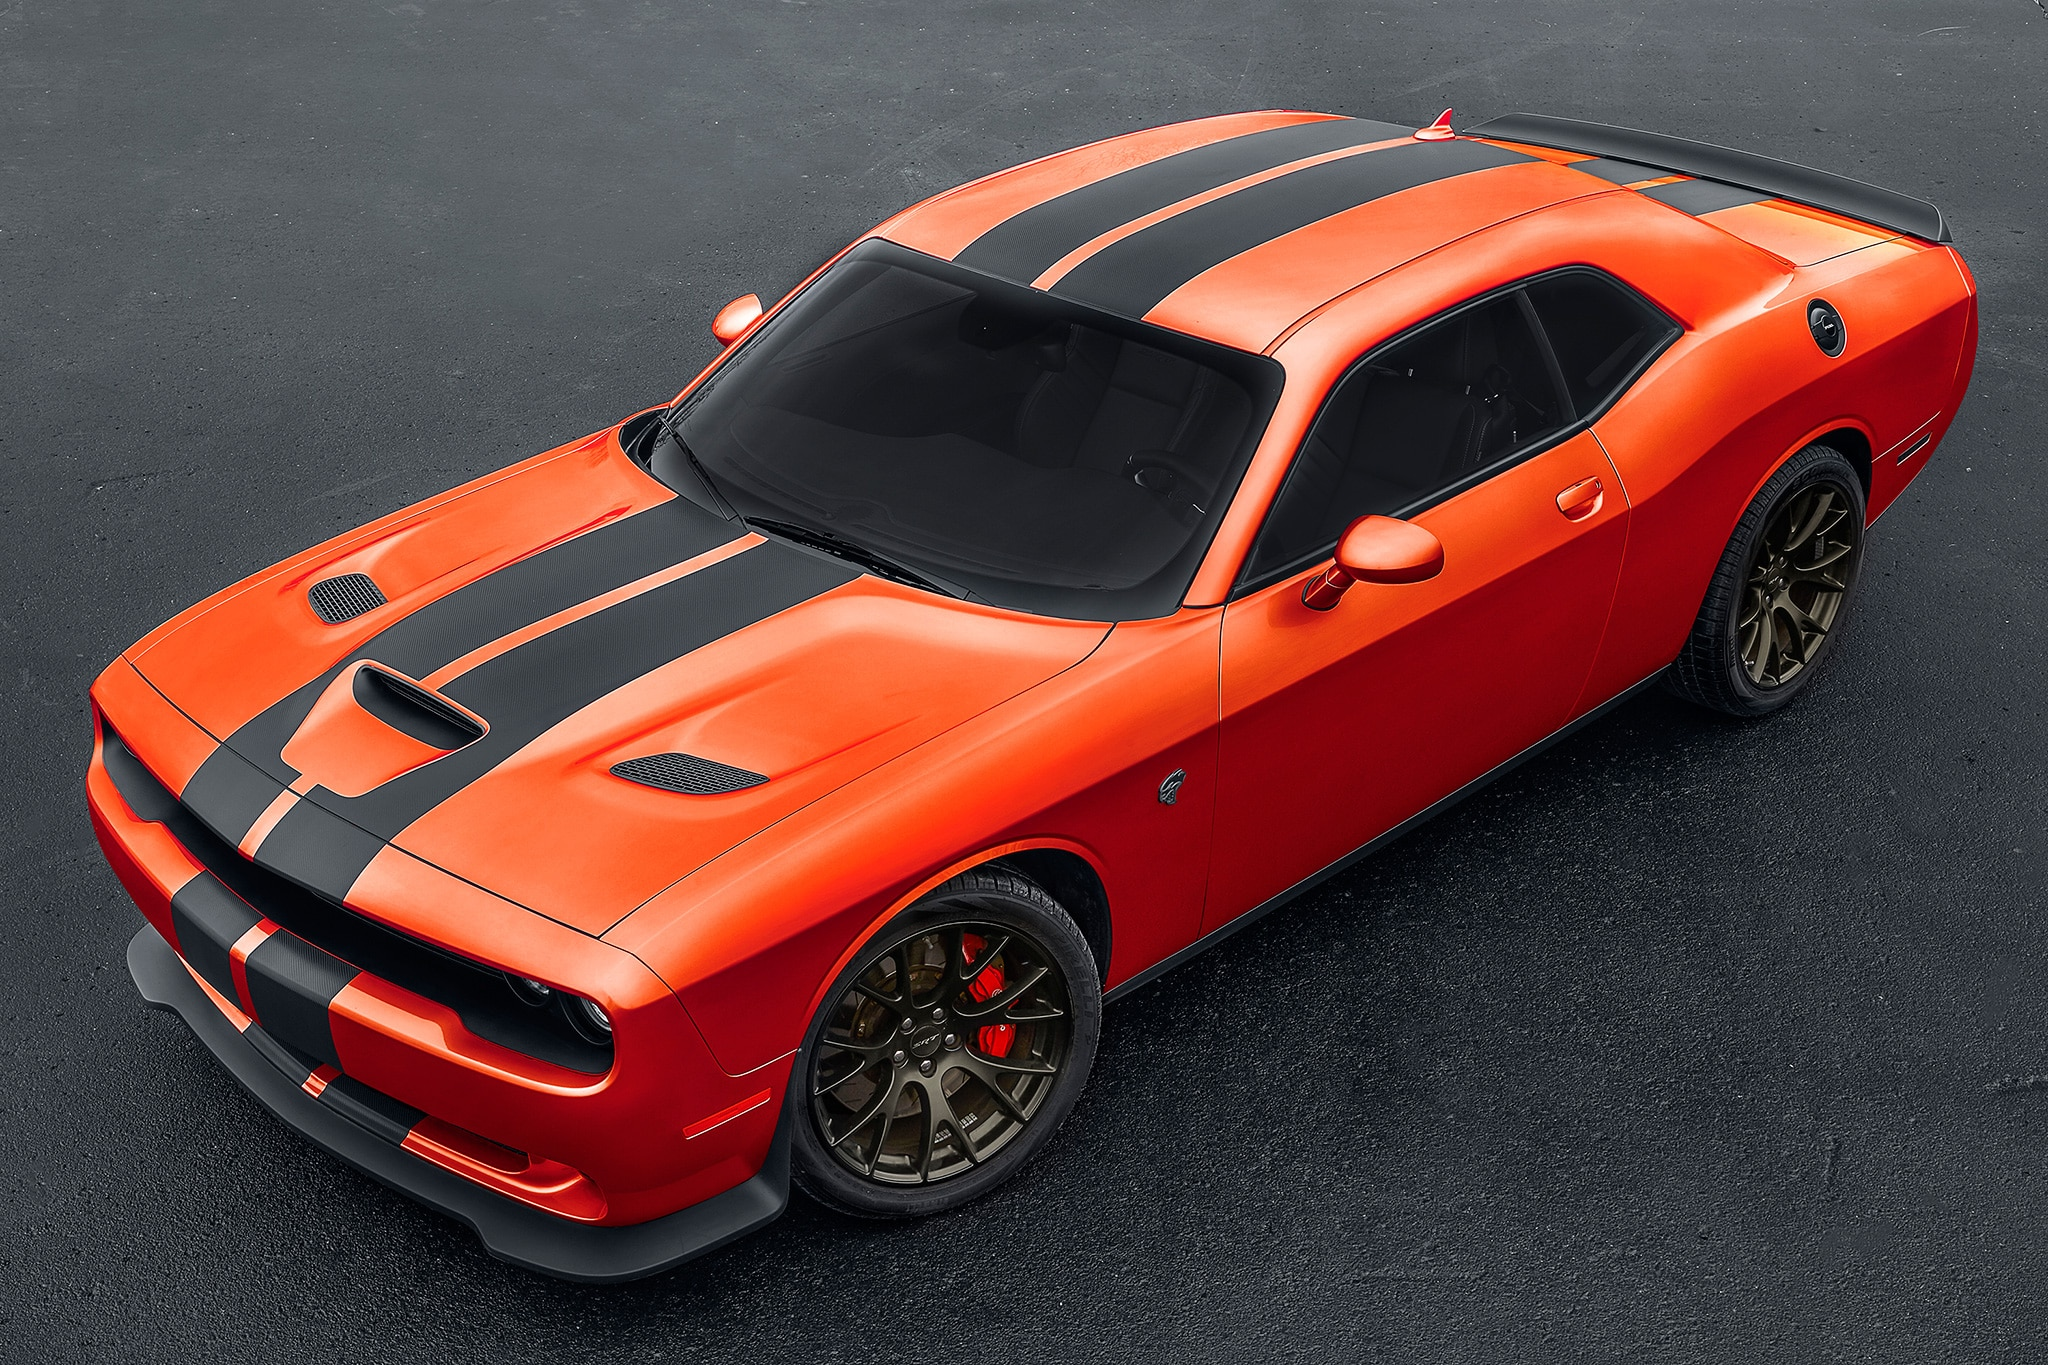 2017 Dodge Charger Srt >> 2017 Dodge Challenger T/A and Charger Daytona Add Retro Flair, More Muscle | Automobile Magazine